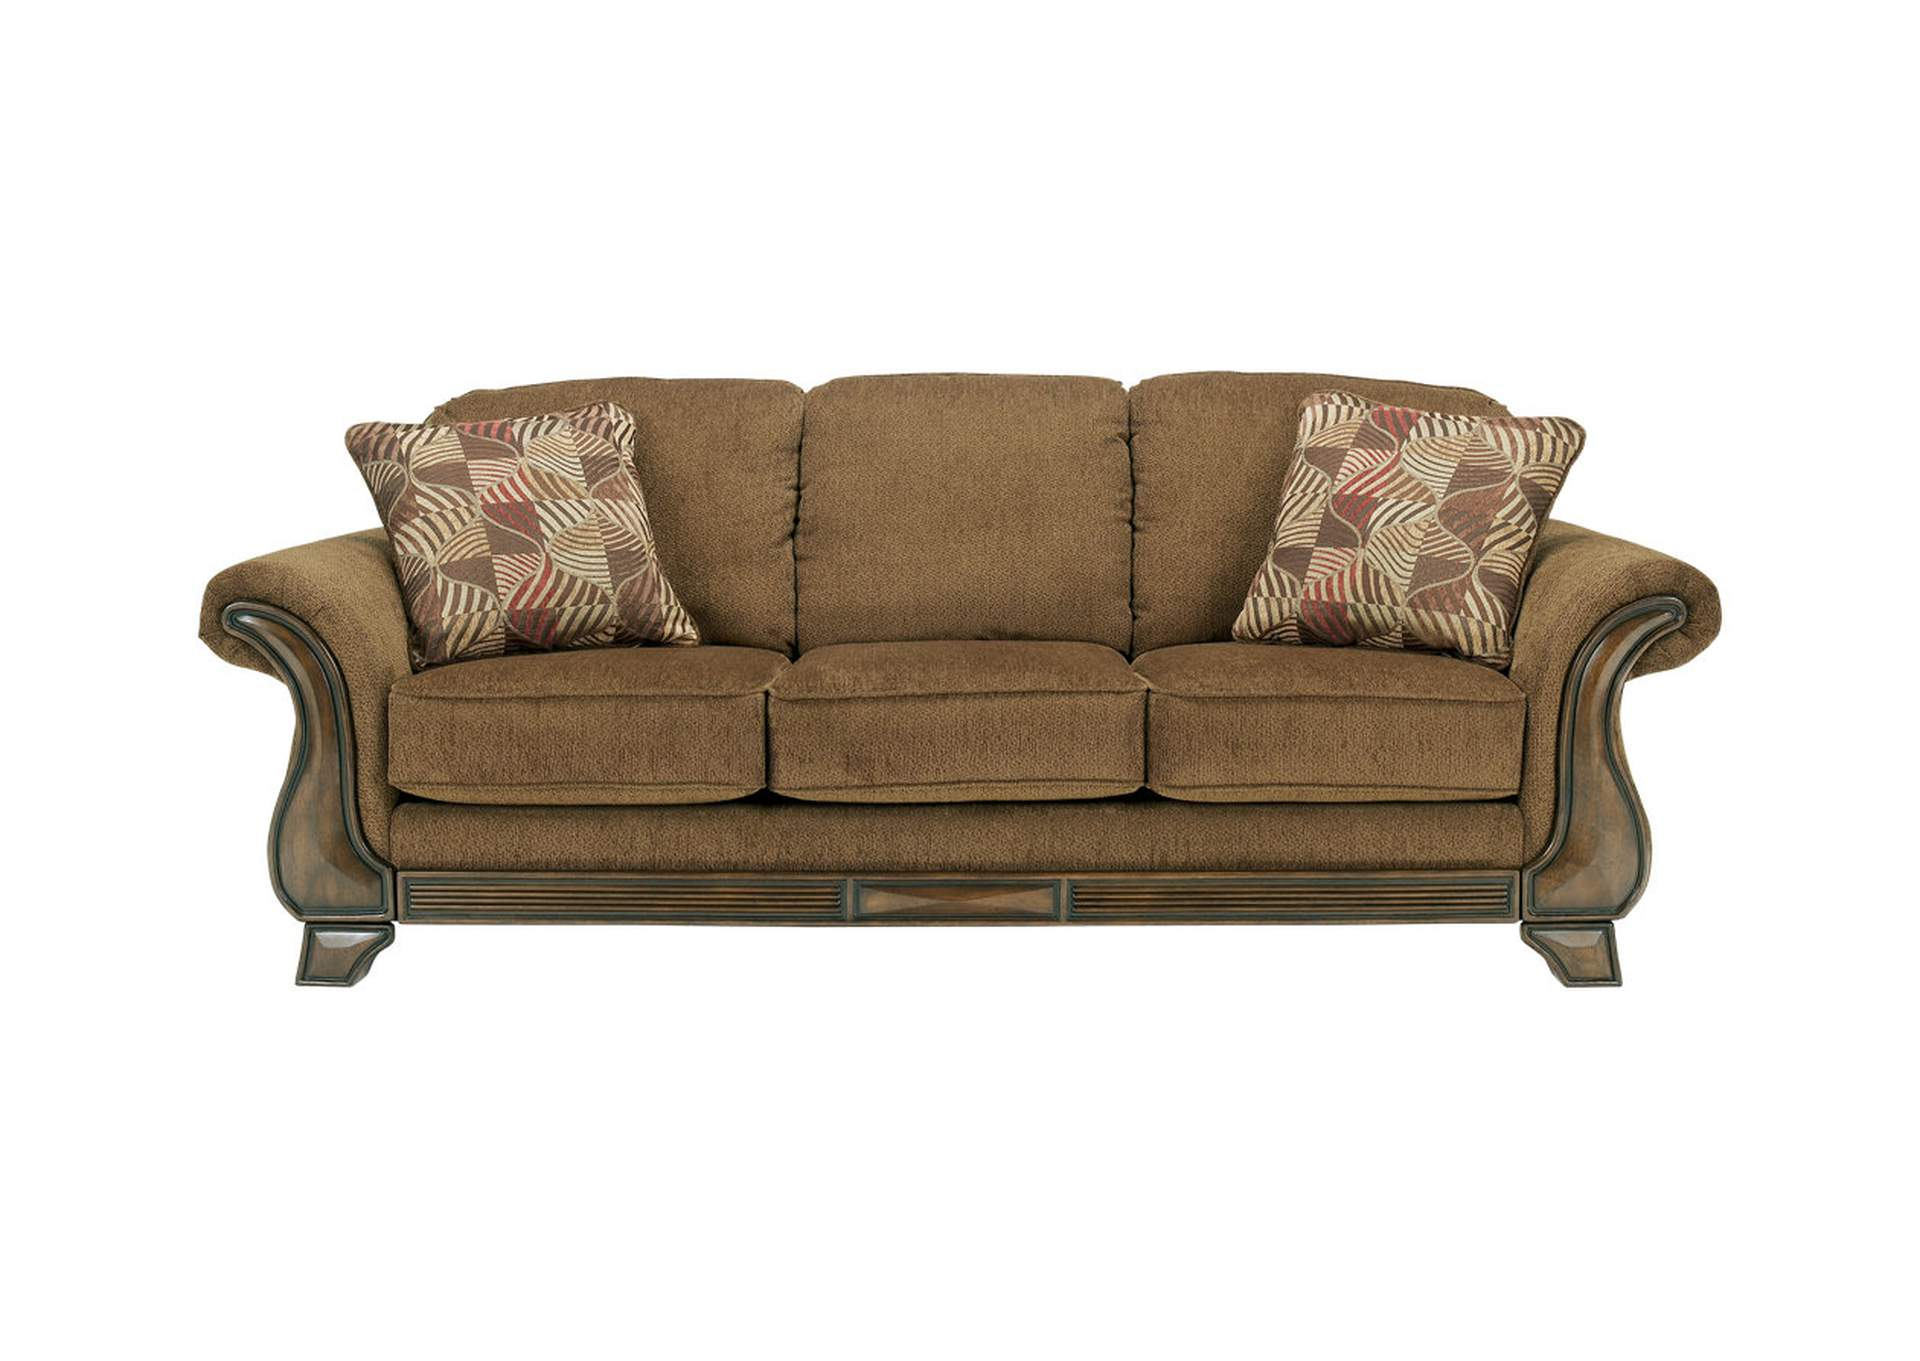 Montgomery Mocha Sofa,Signature Design By Ashley